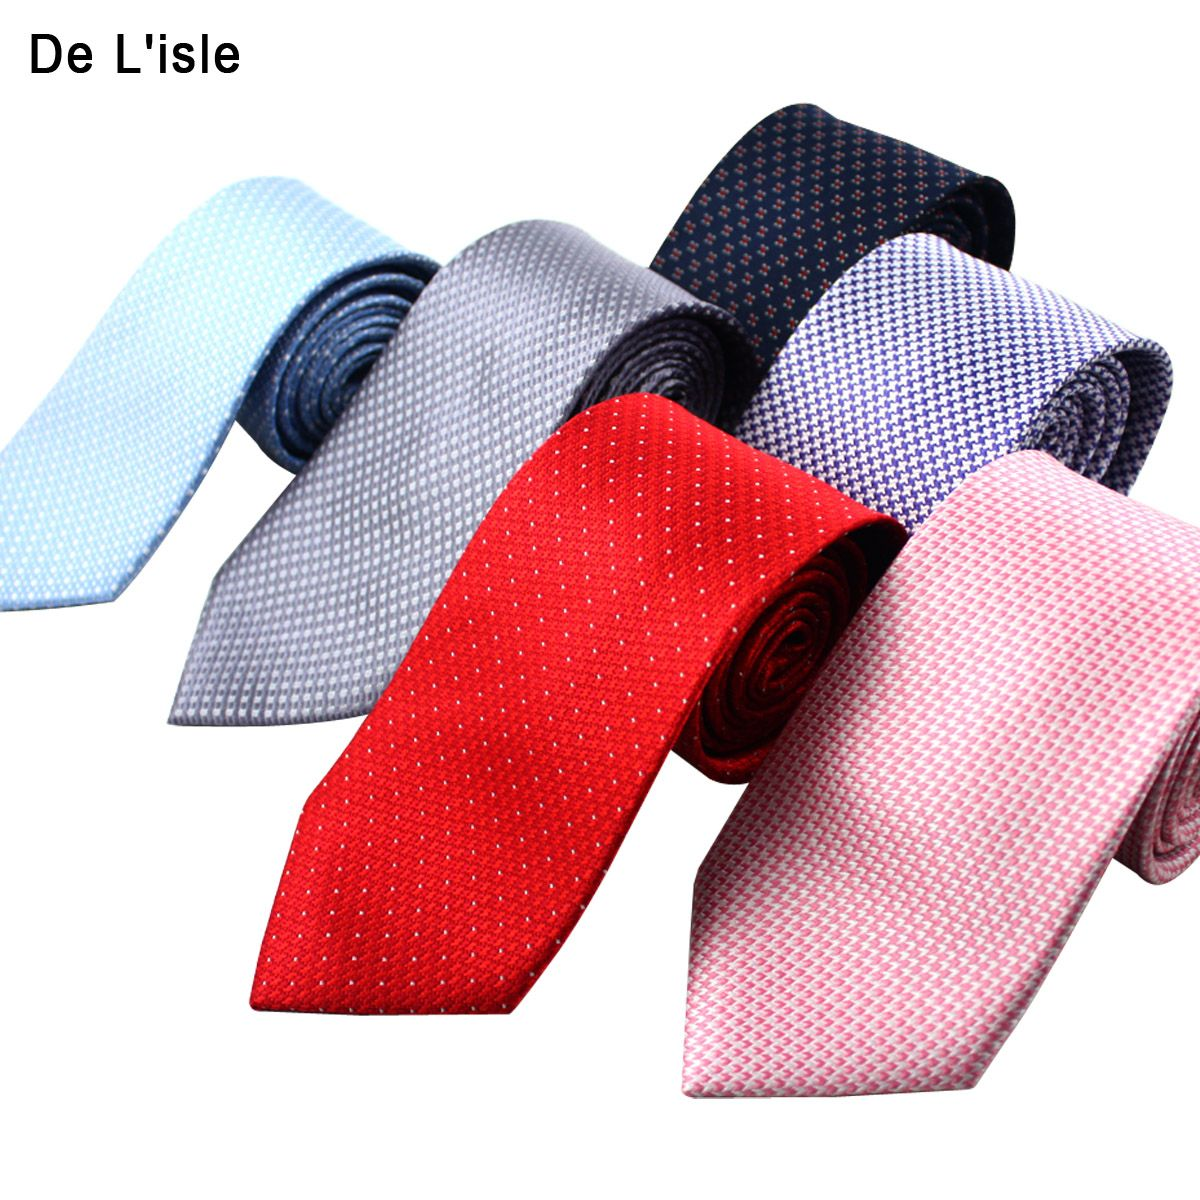 Business Meeting Wedding Suit Necktie Tie Mens Casual Party Ties